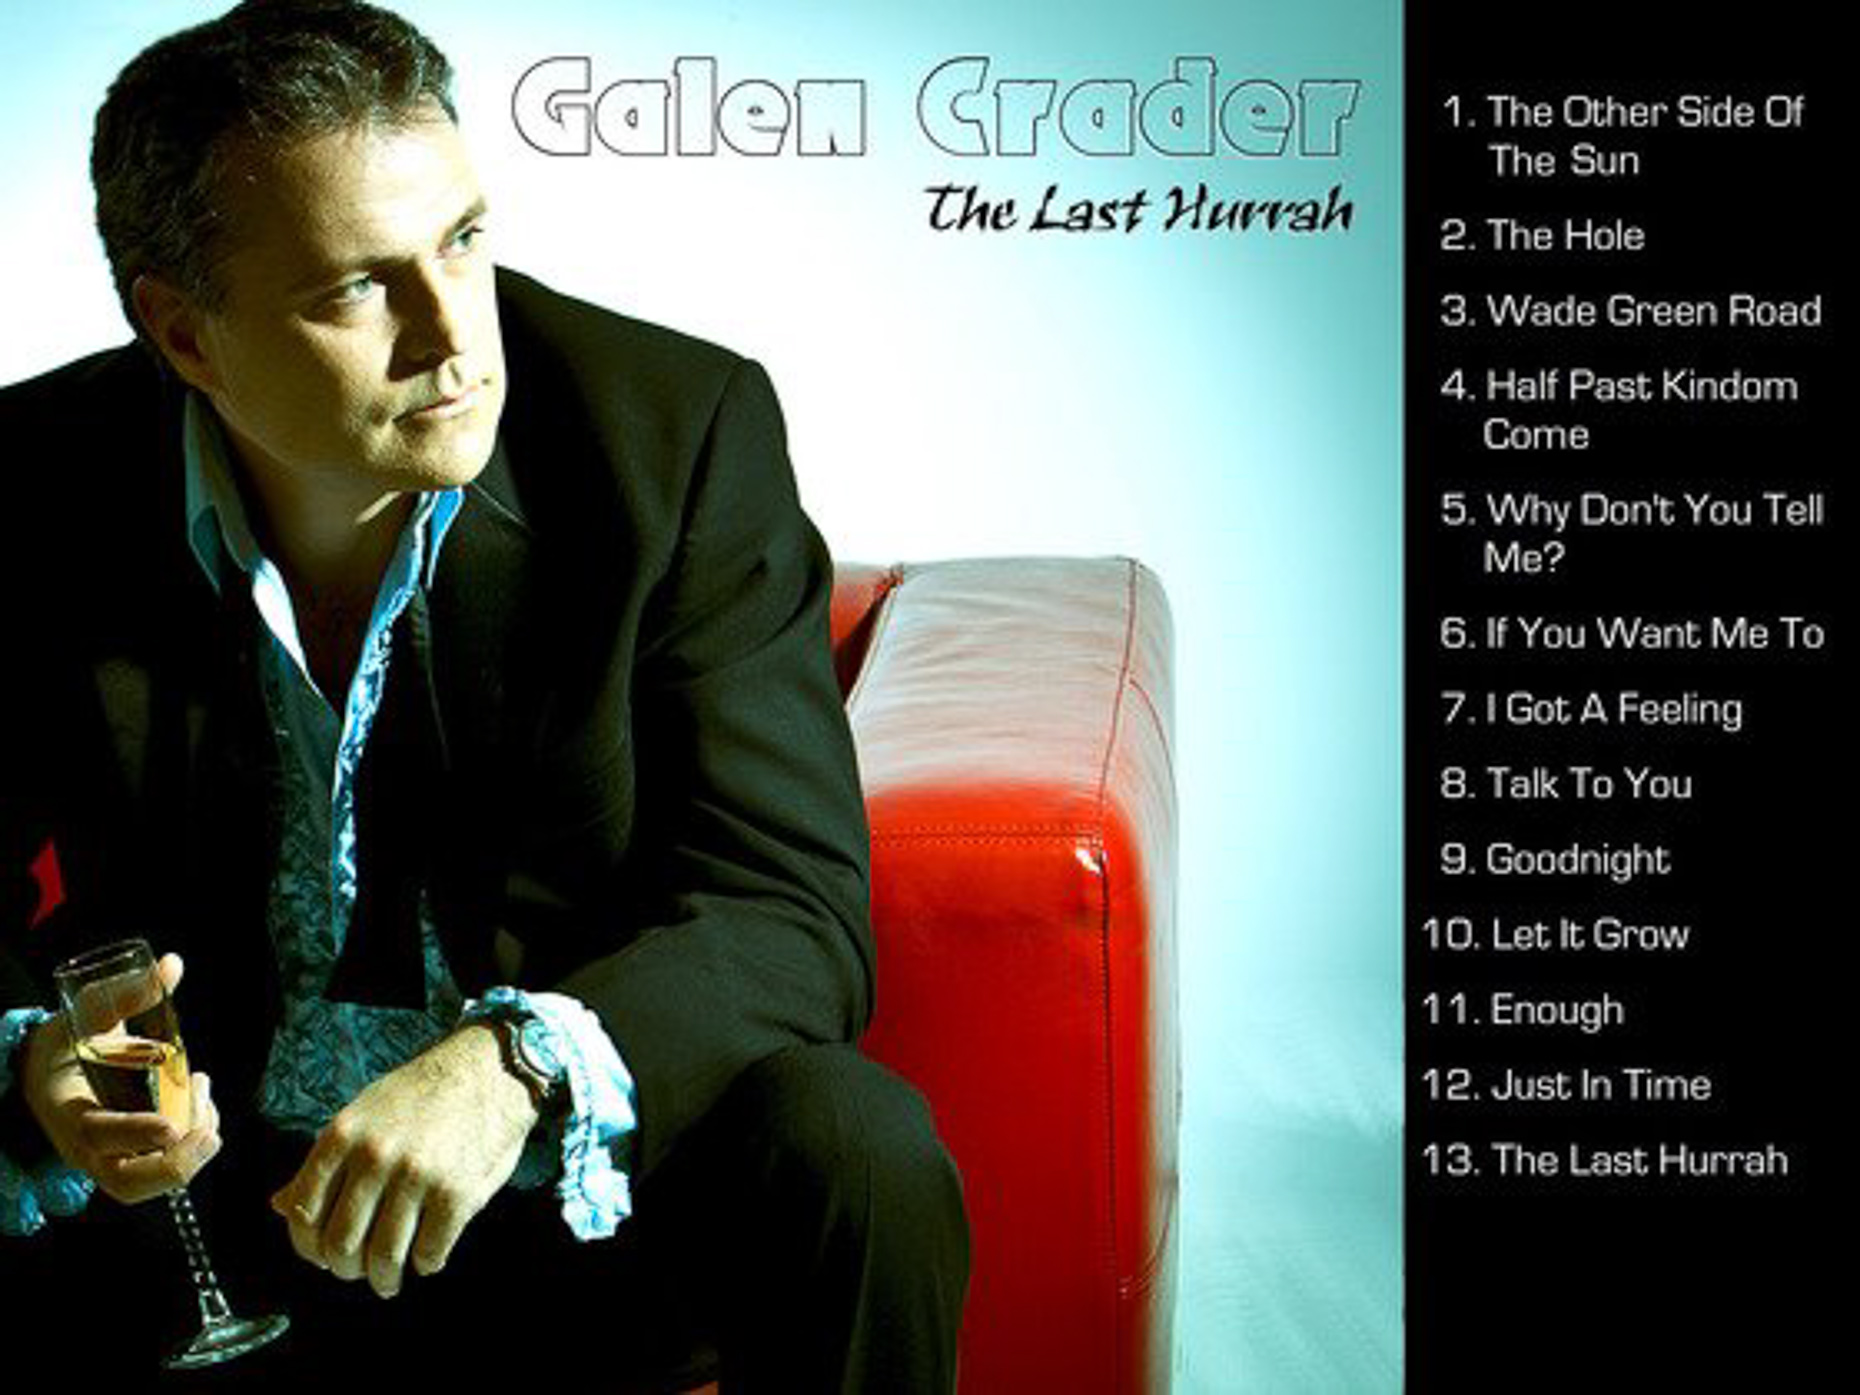 Galen_Crader_CNN_music_CD_Matt_Boyd_Photography_Atlanta_Georgia_Photographer_singer_talent_actor_headshot